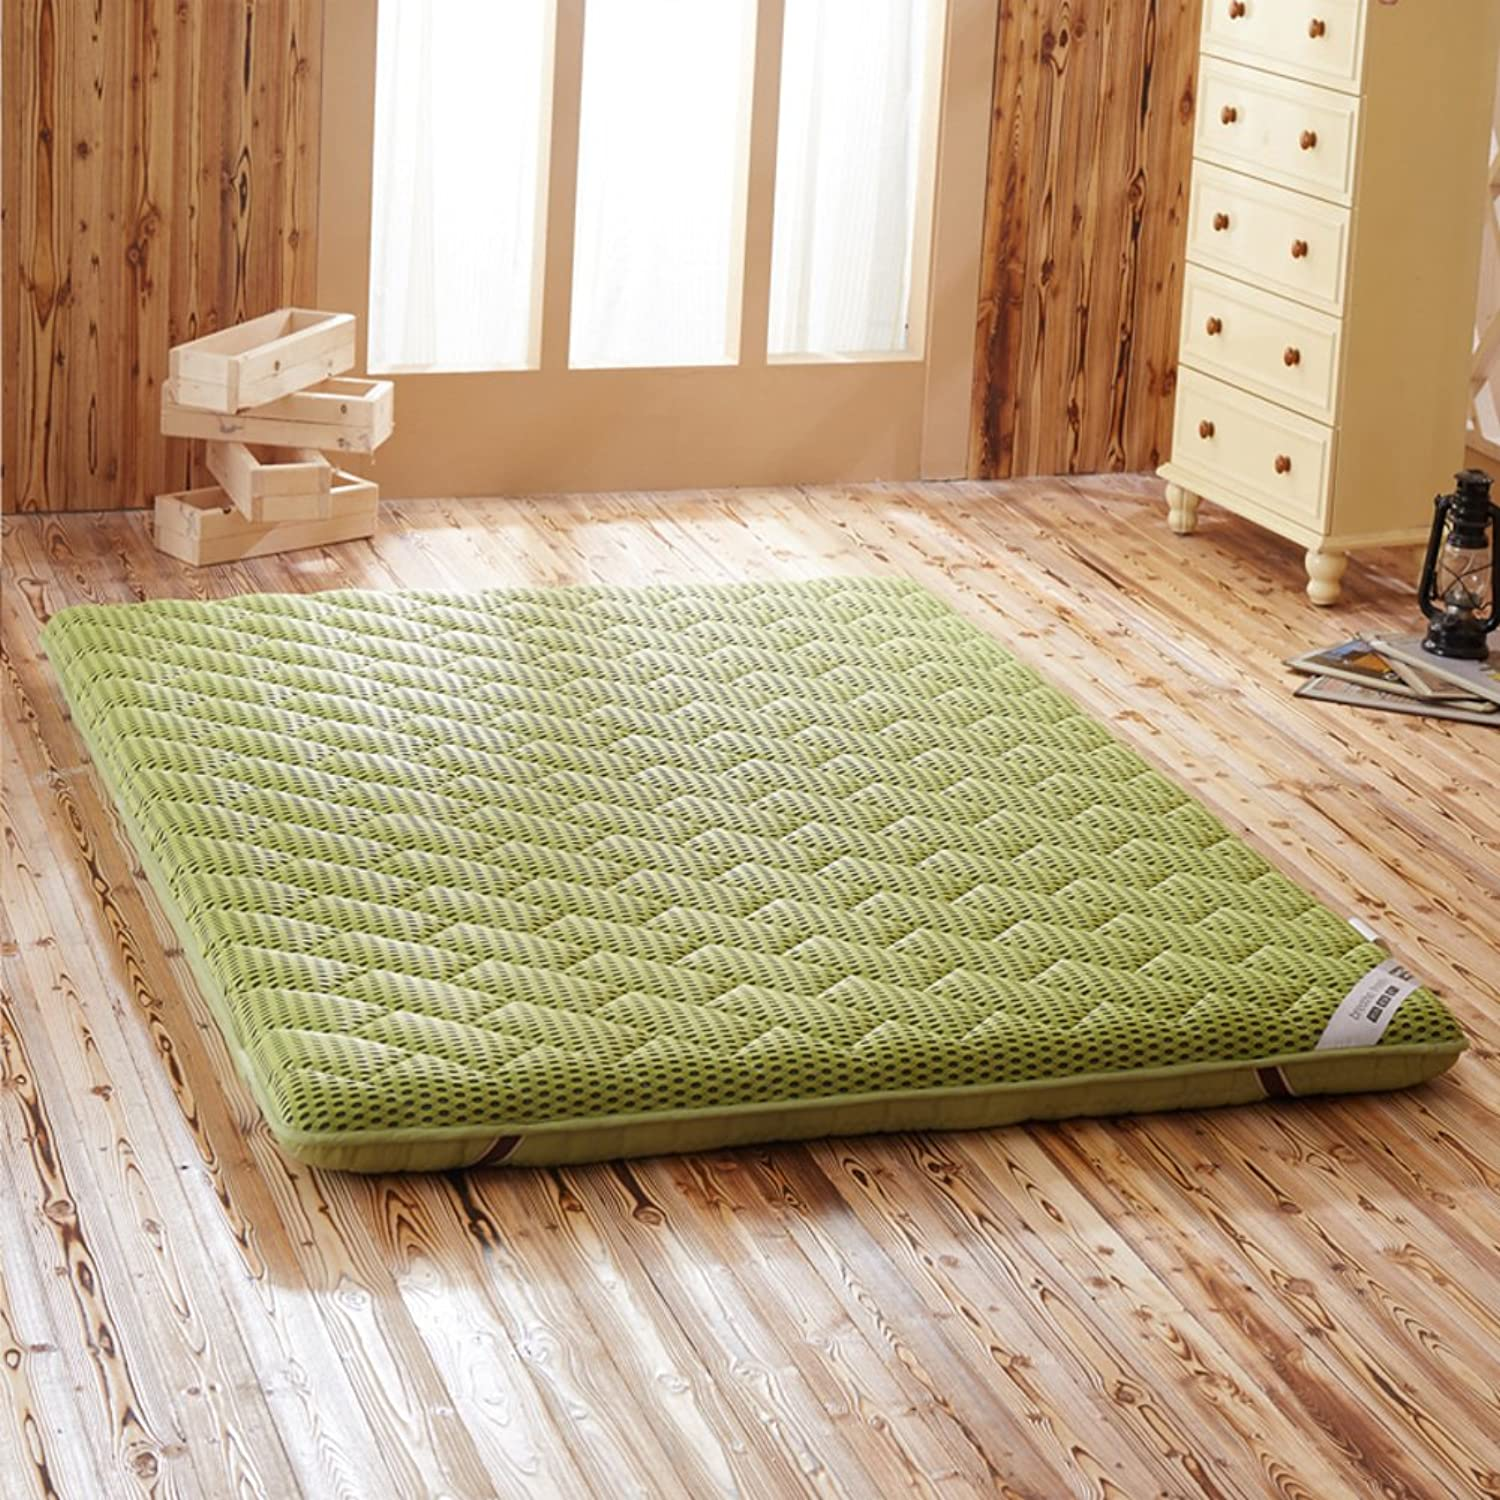 Foldable Breathable Mattress, Memory Foam Sleeping pad, Soft Thick Double Tatami Floor mat Japanese futon Topper Dormitory-D 90x200cm(35x79inch)